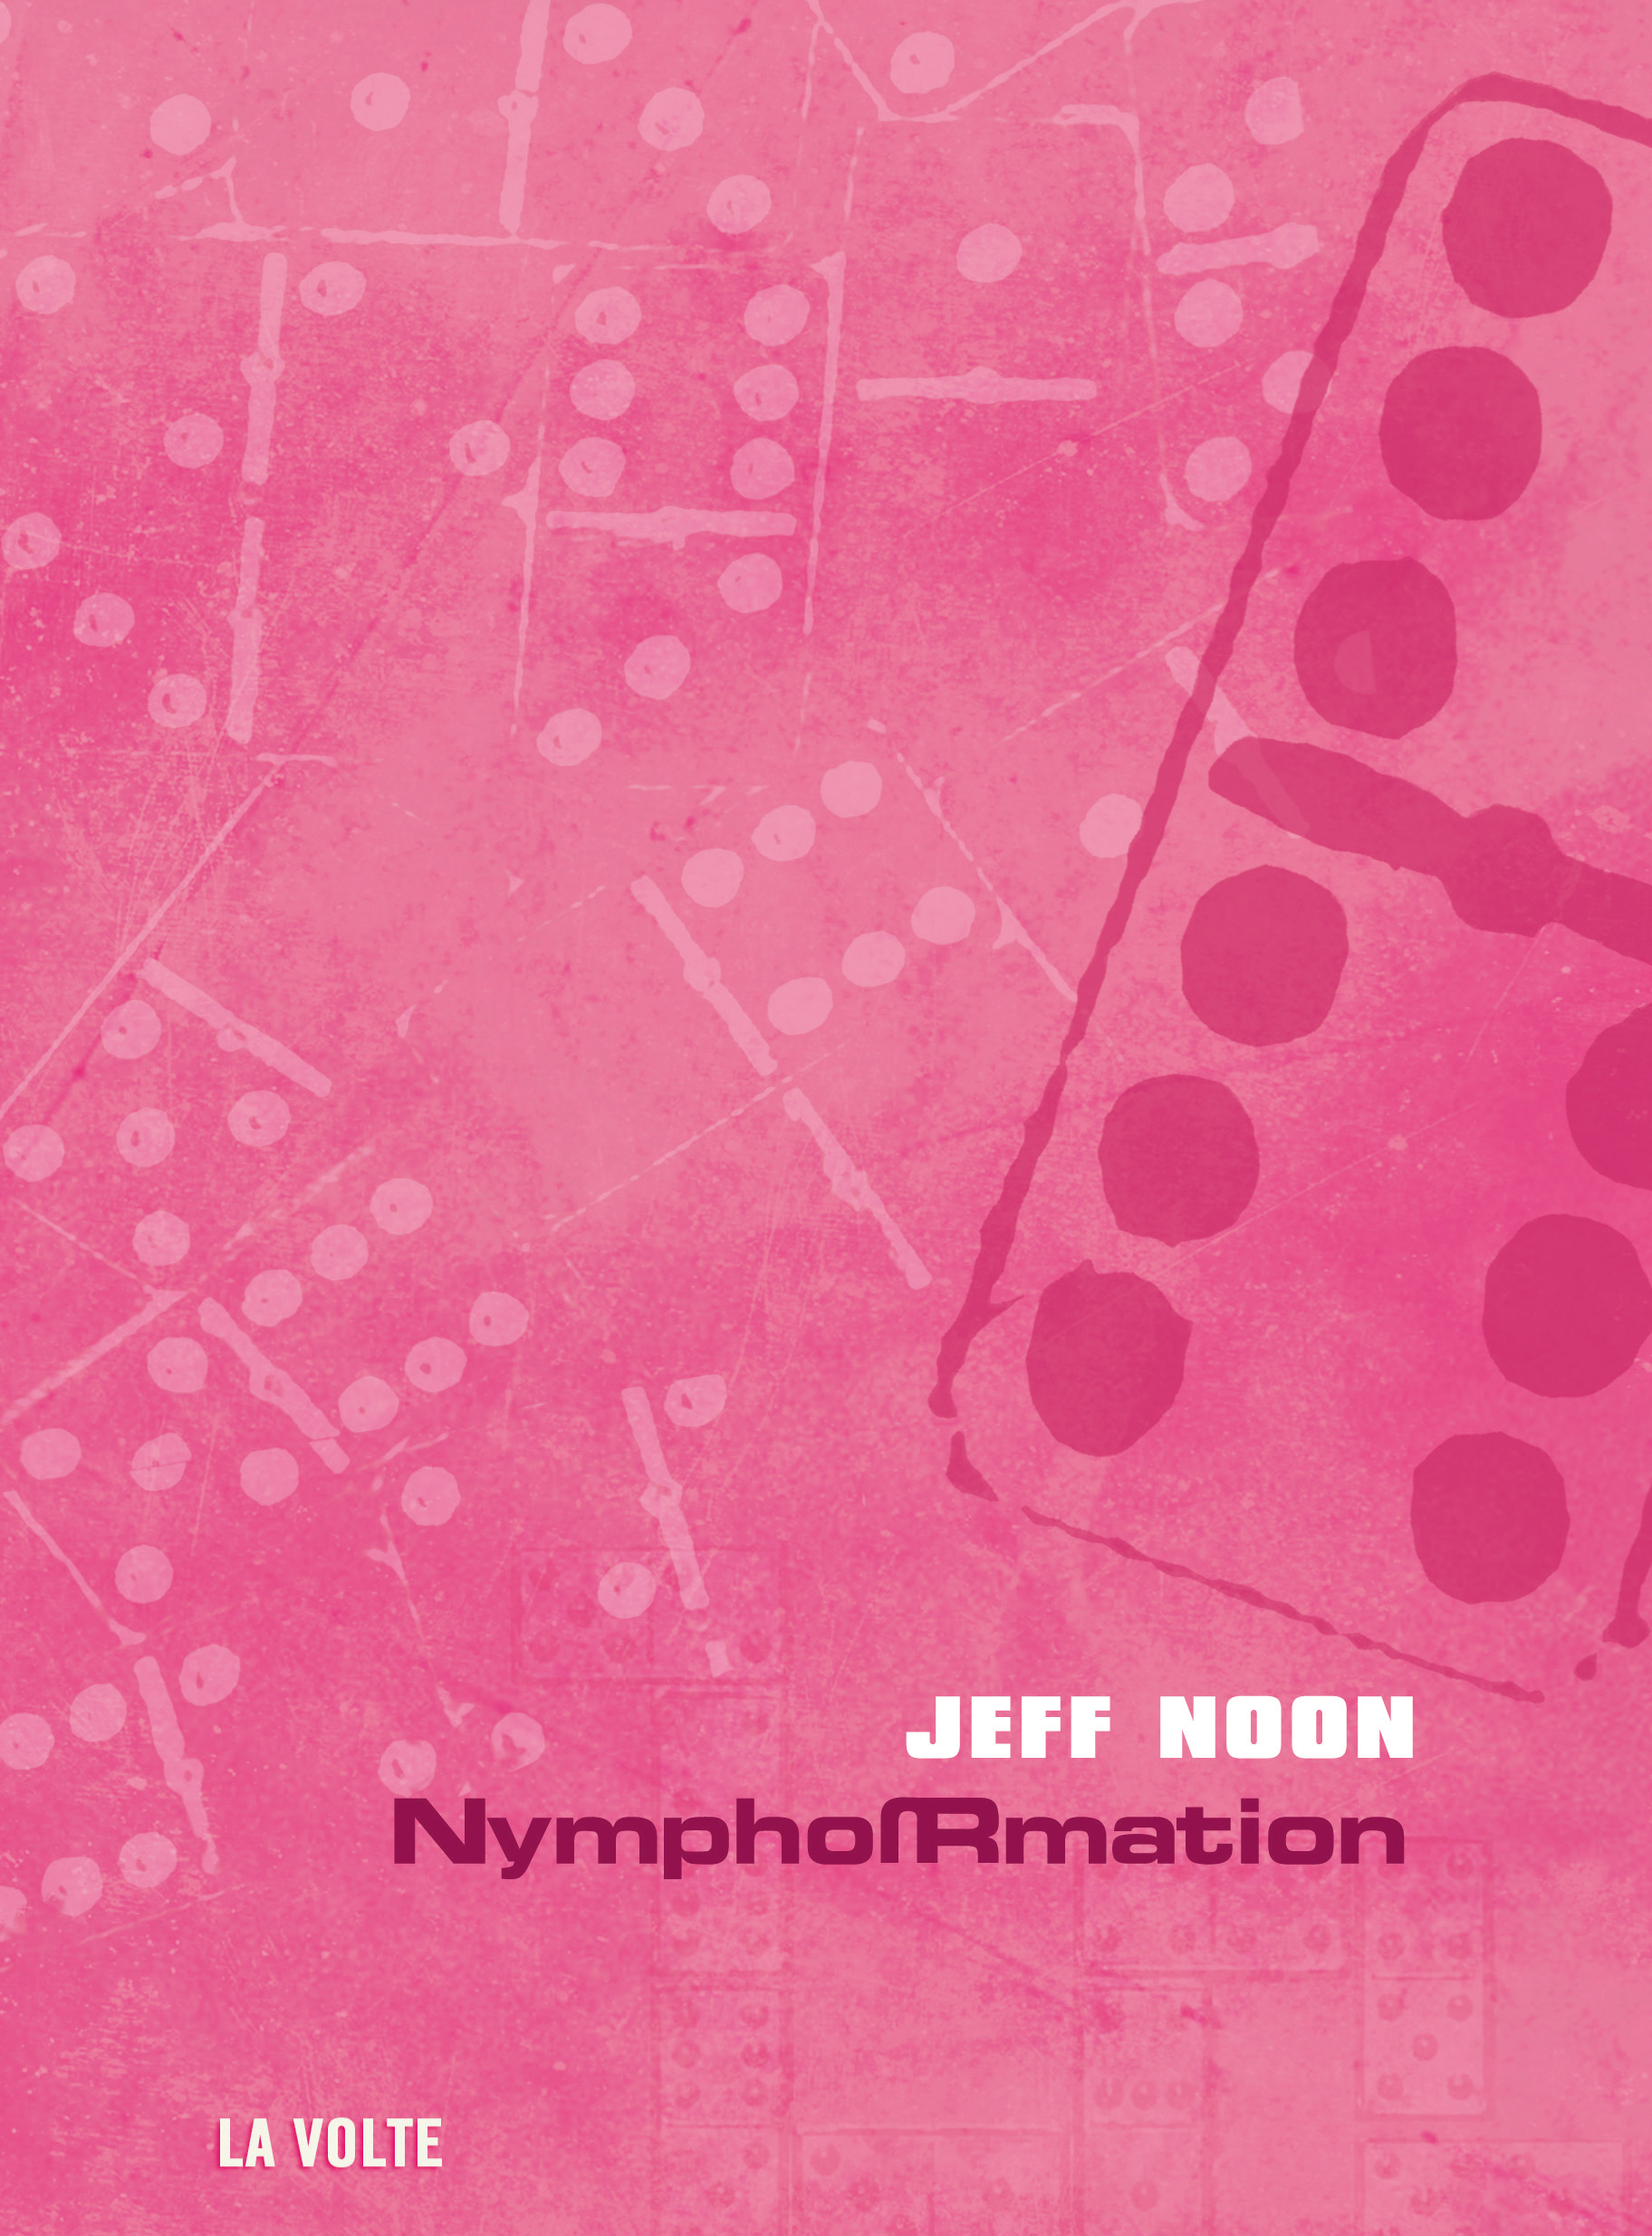 NymphoRmation